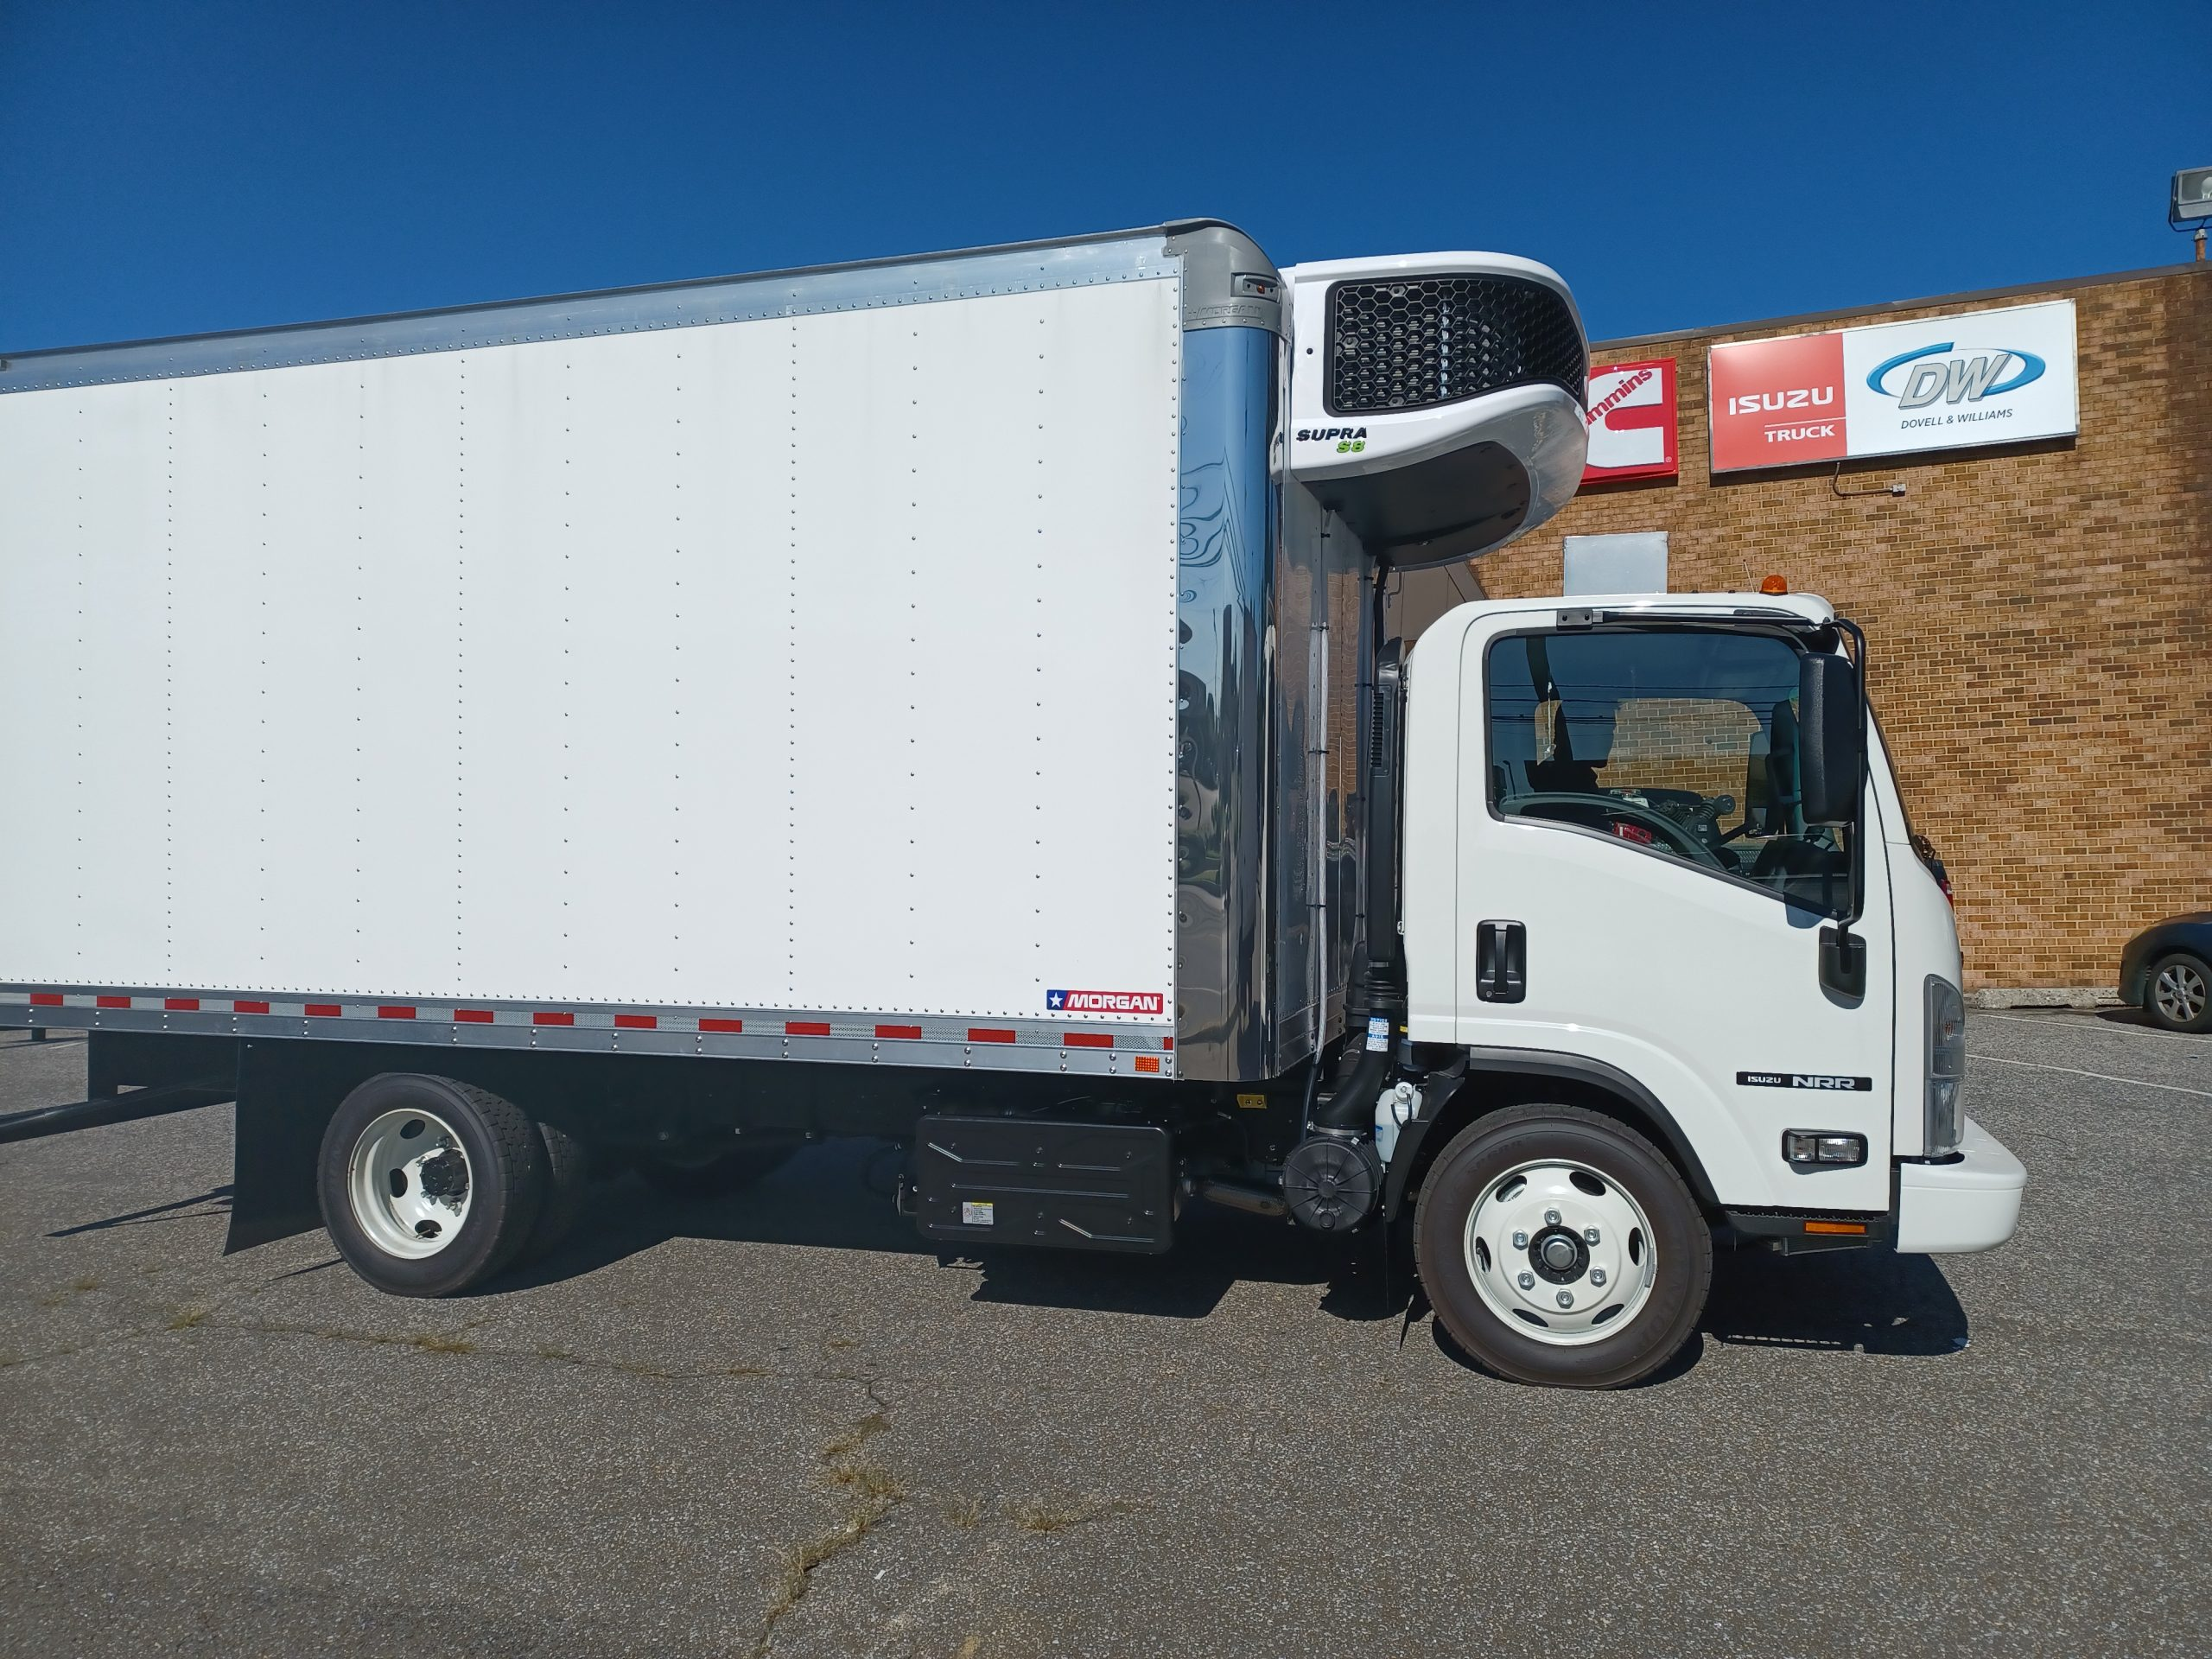 2022 NRR Refrigerated Truck Diesel 3 year Unlimited Mile Warranty 20210903_094351-scaled